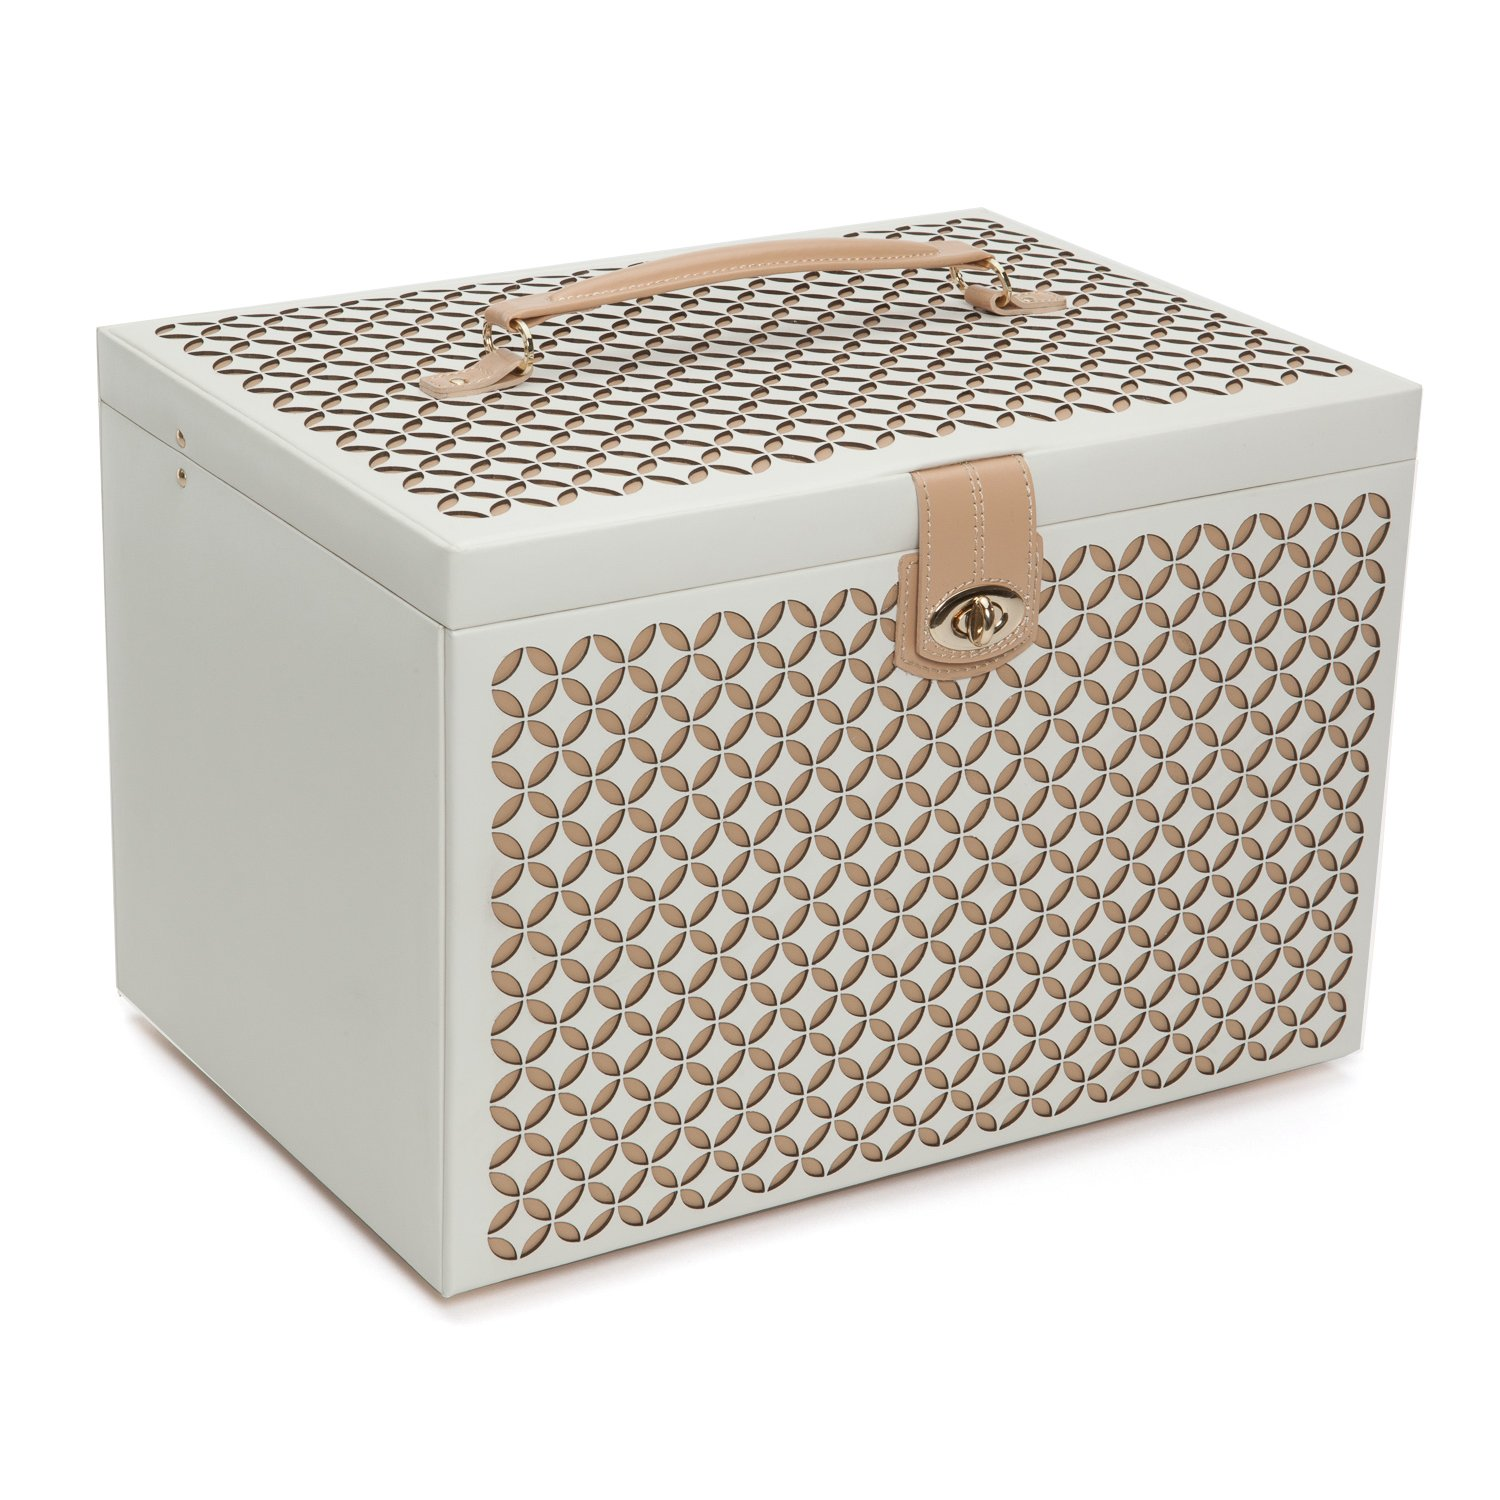 WOLF 301653 Chloe Extra Large Jewelry Box, Cream by WOLF